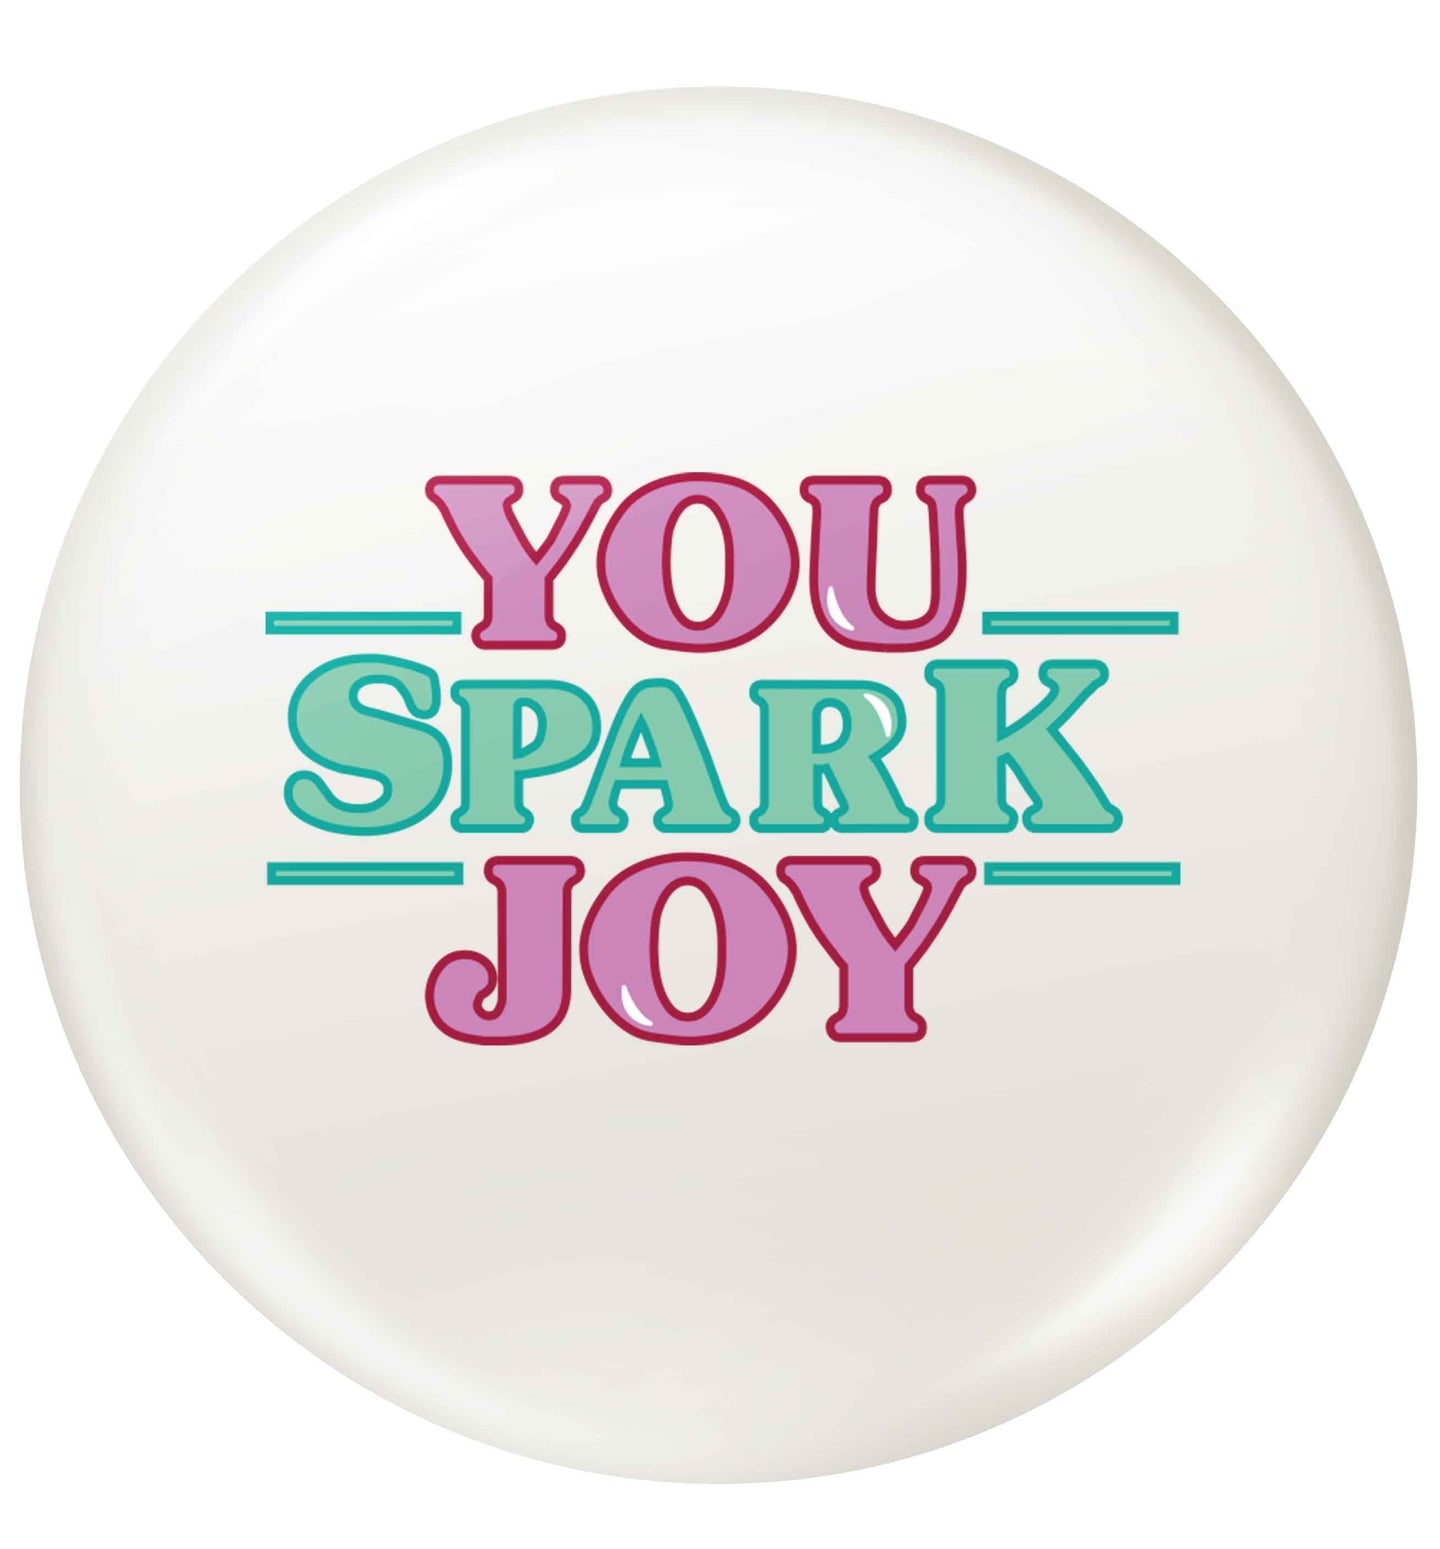 You spark joy small 25mm Pin badge